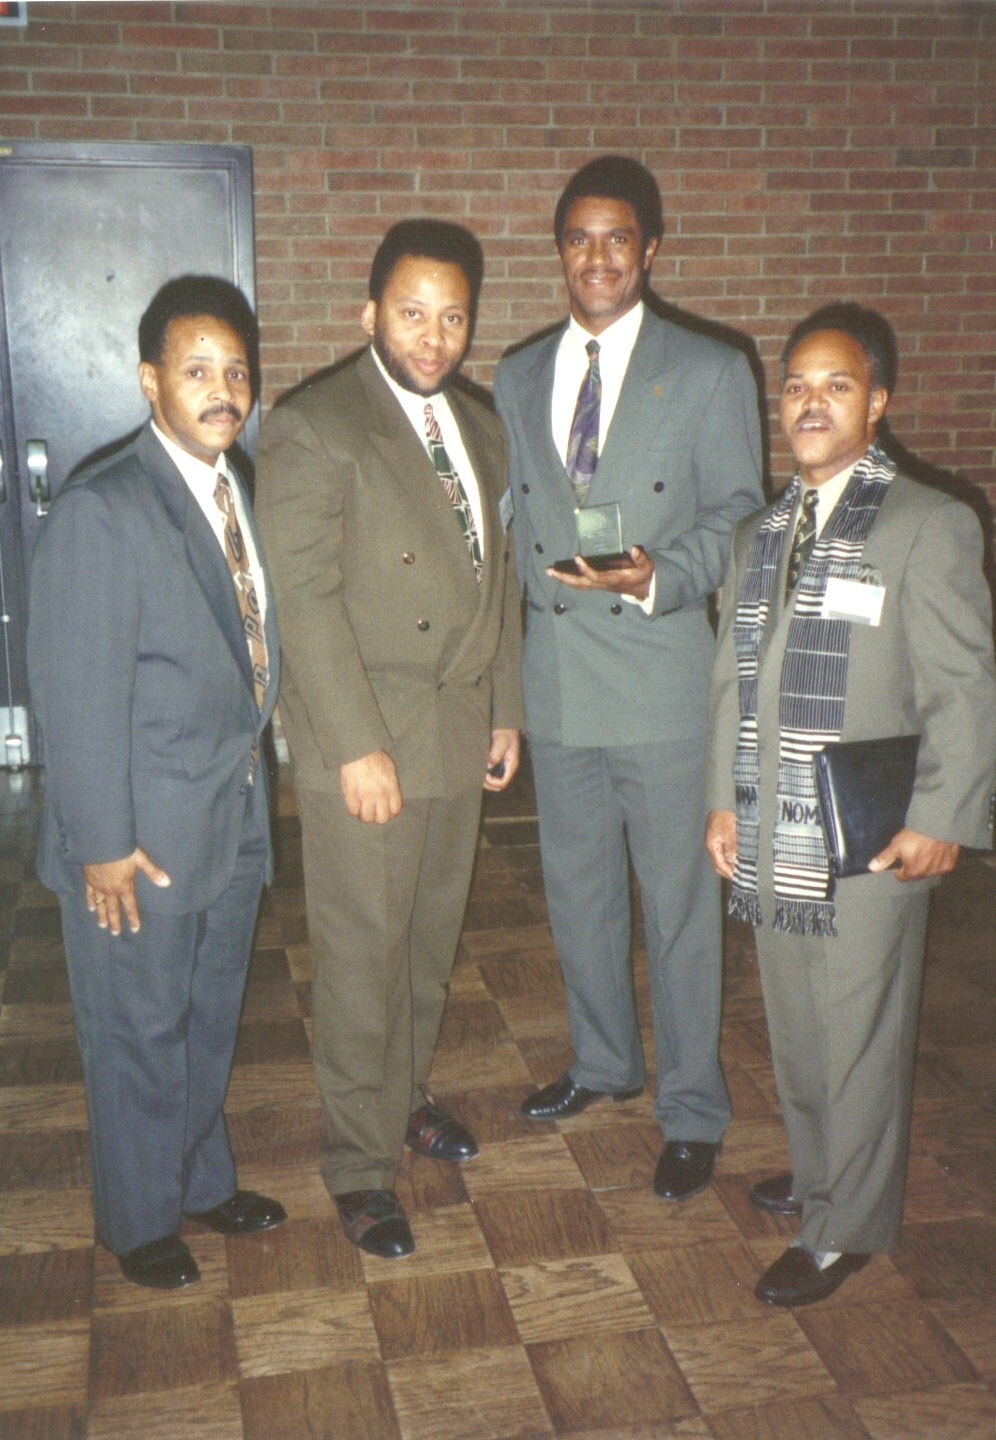 1991 - [Left to Right] Billy McGhee, Erroll O'Neil, Mike Rodgers, Ron Garner